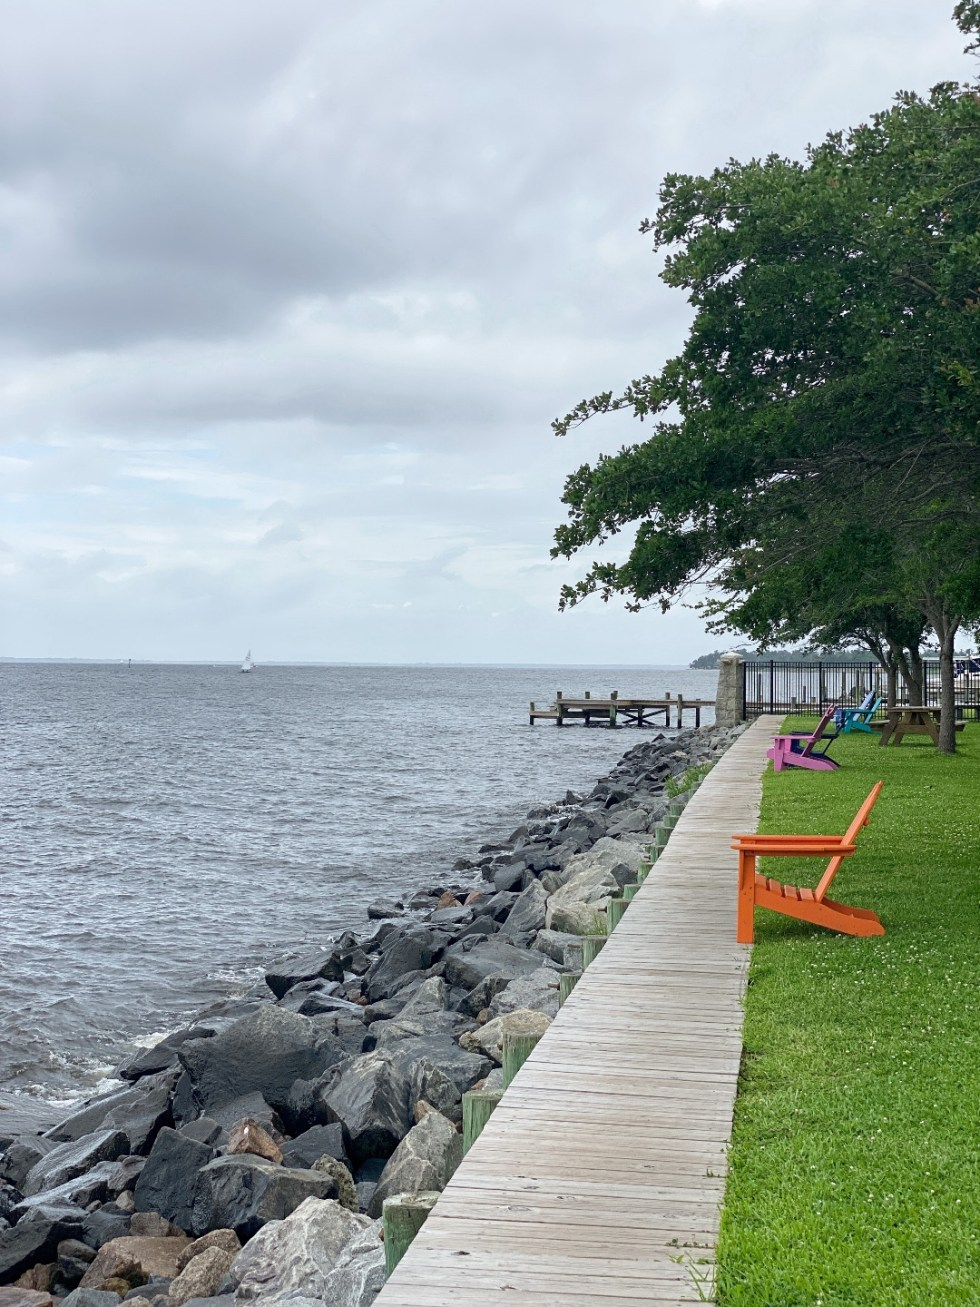 What to Do in Oriental, NC - I'm Fixin' To - @imfixintoblog | Things to do in Oriental NC by popular NC travel blog, I'm Fixin' To: image of colorful wooden lounge chairs on a ocean waterfront.